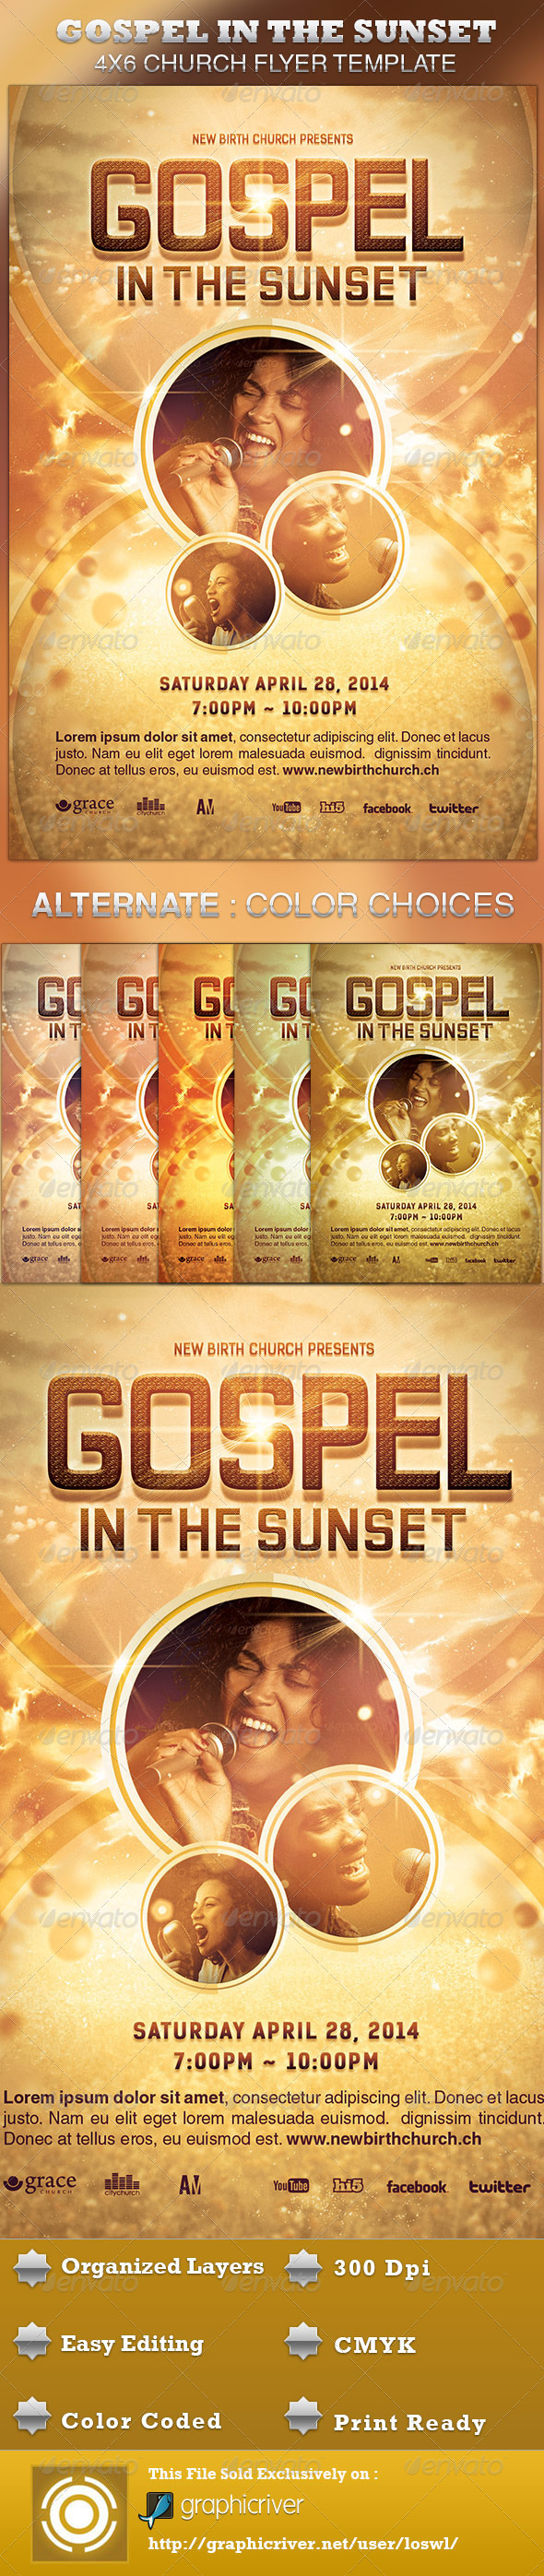 print templates gospel in the sunset church flyer template graphicriver. Black Bedroom Furniture Sets. Home Design Ideas